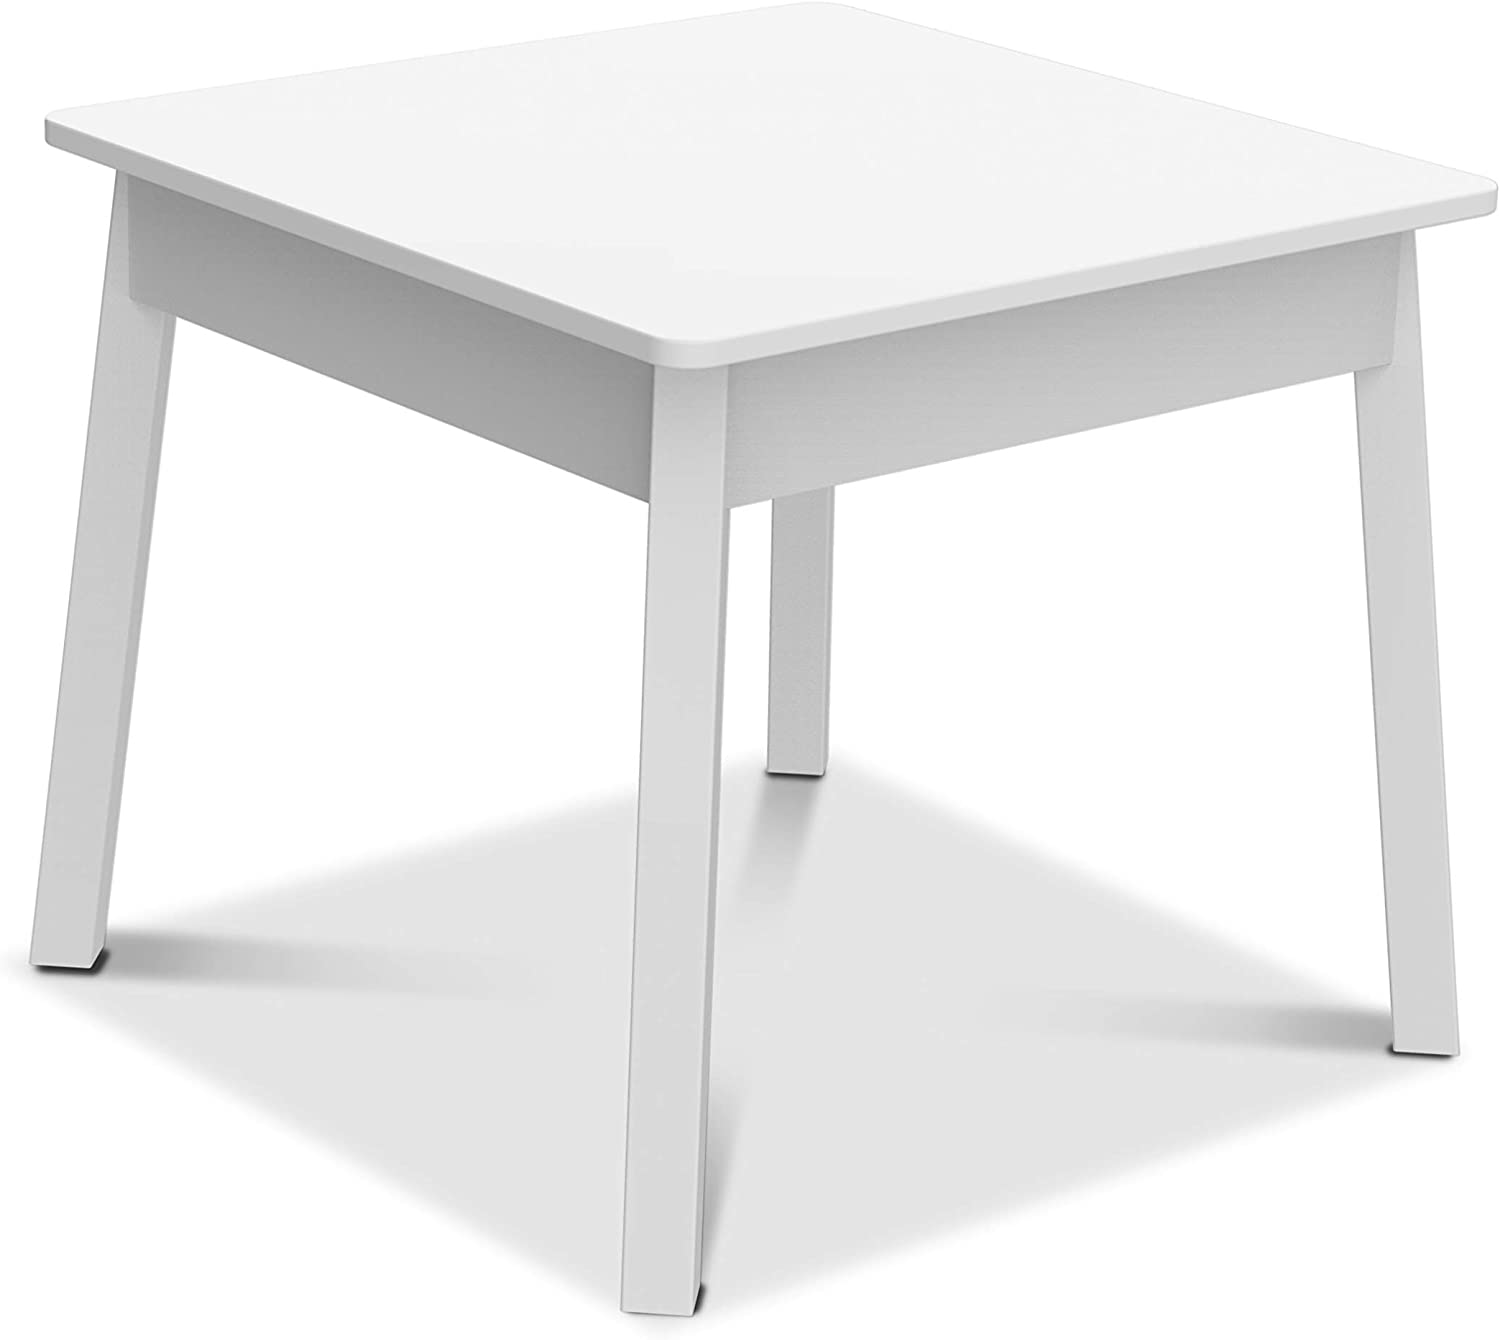 Melissa Doug New life sale Wooden Square Table Pla – for Furniture Kids